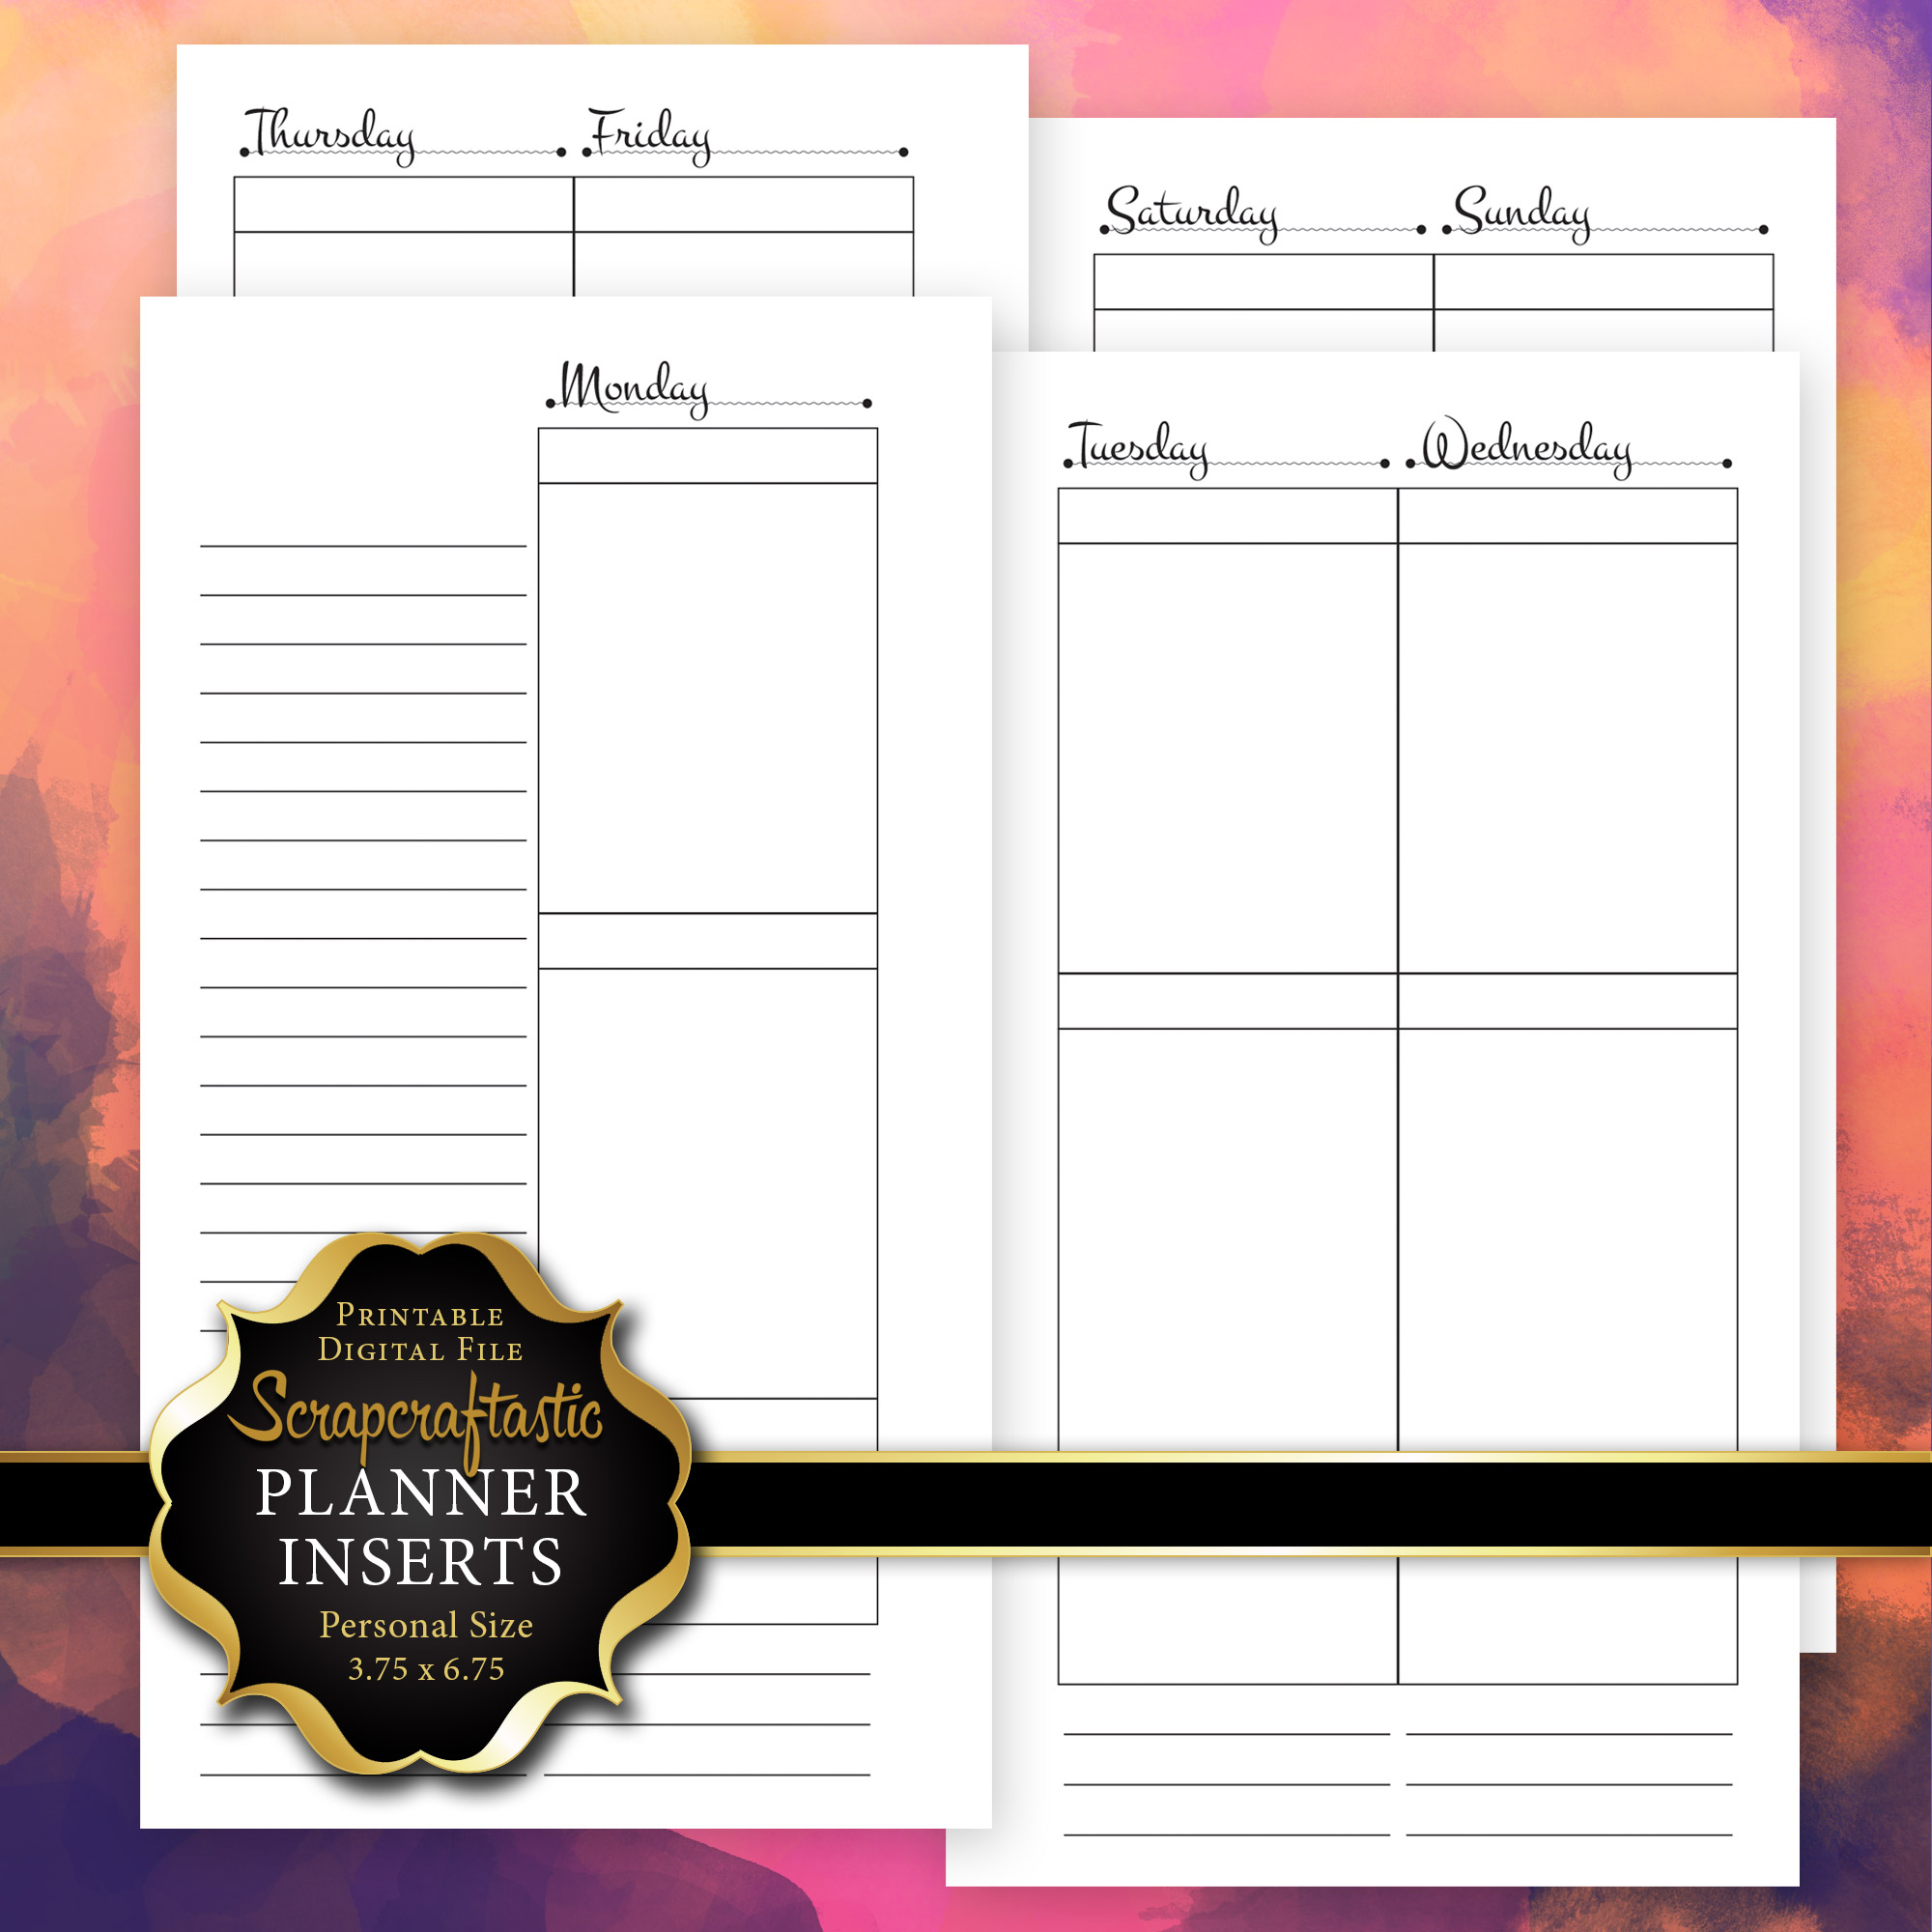 graphic regarding Free Planner Refills Printable referred to as Unique Printable Planner Inserts Archives - Scraftastic